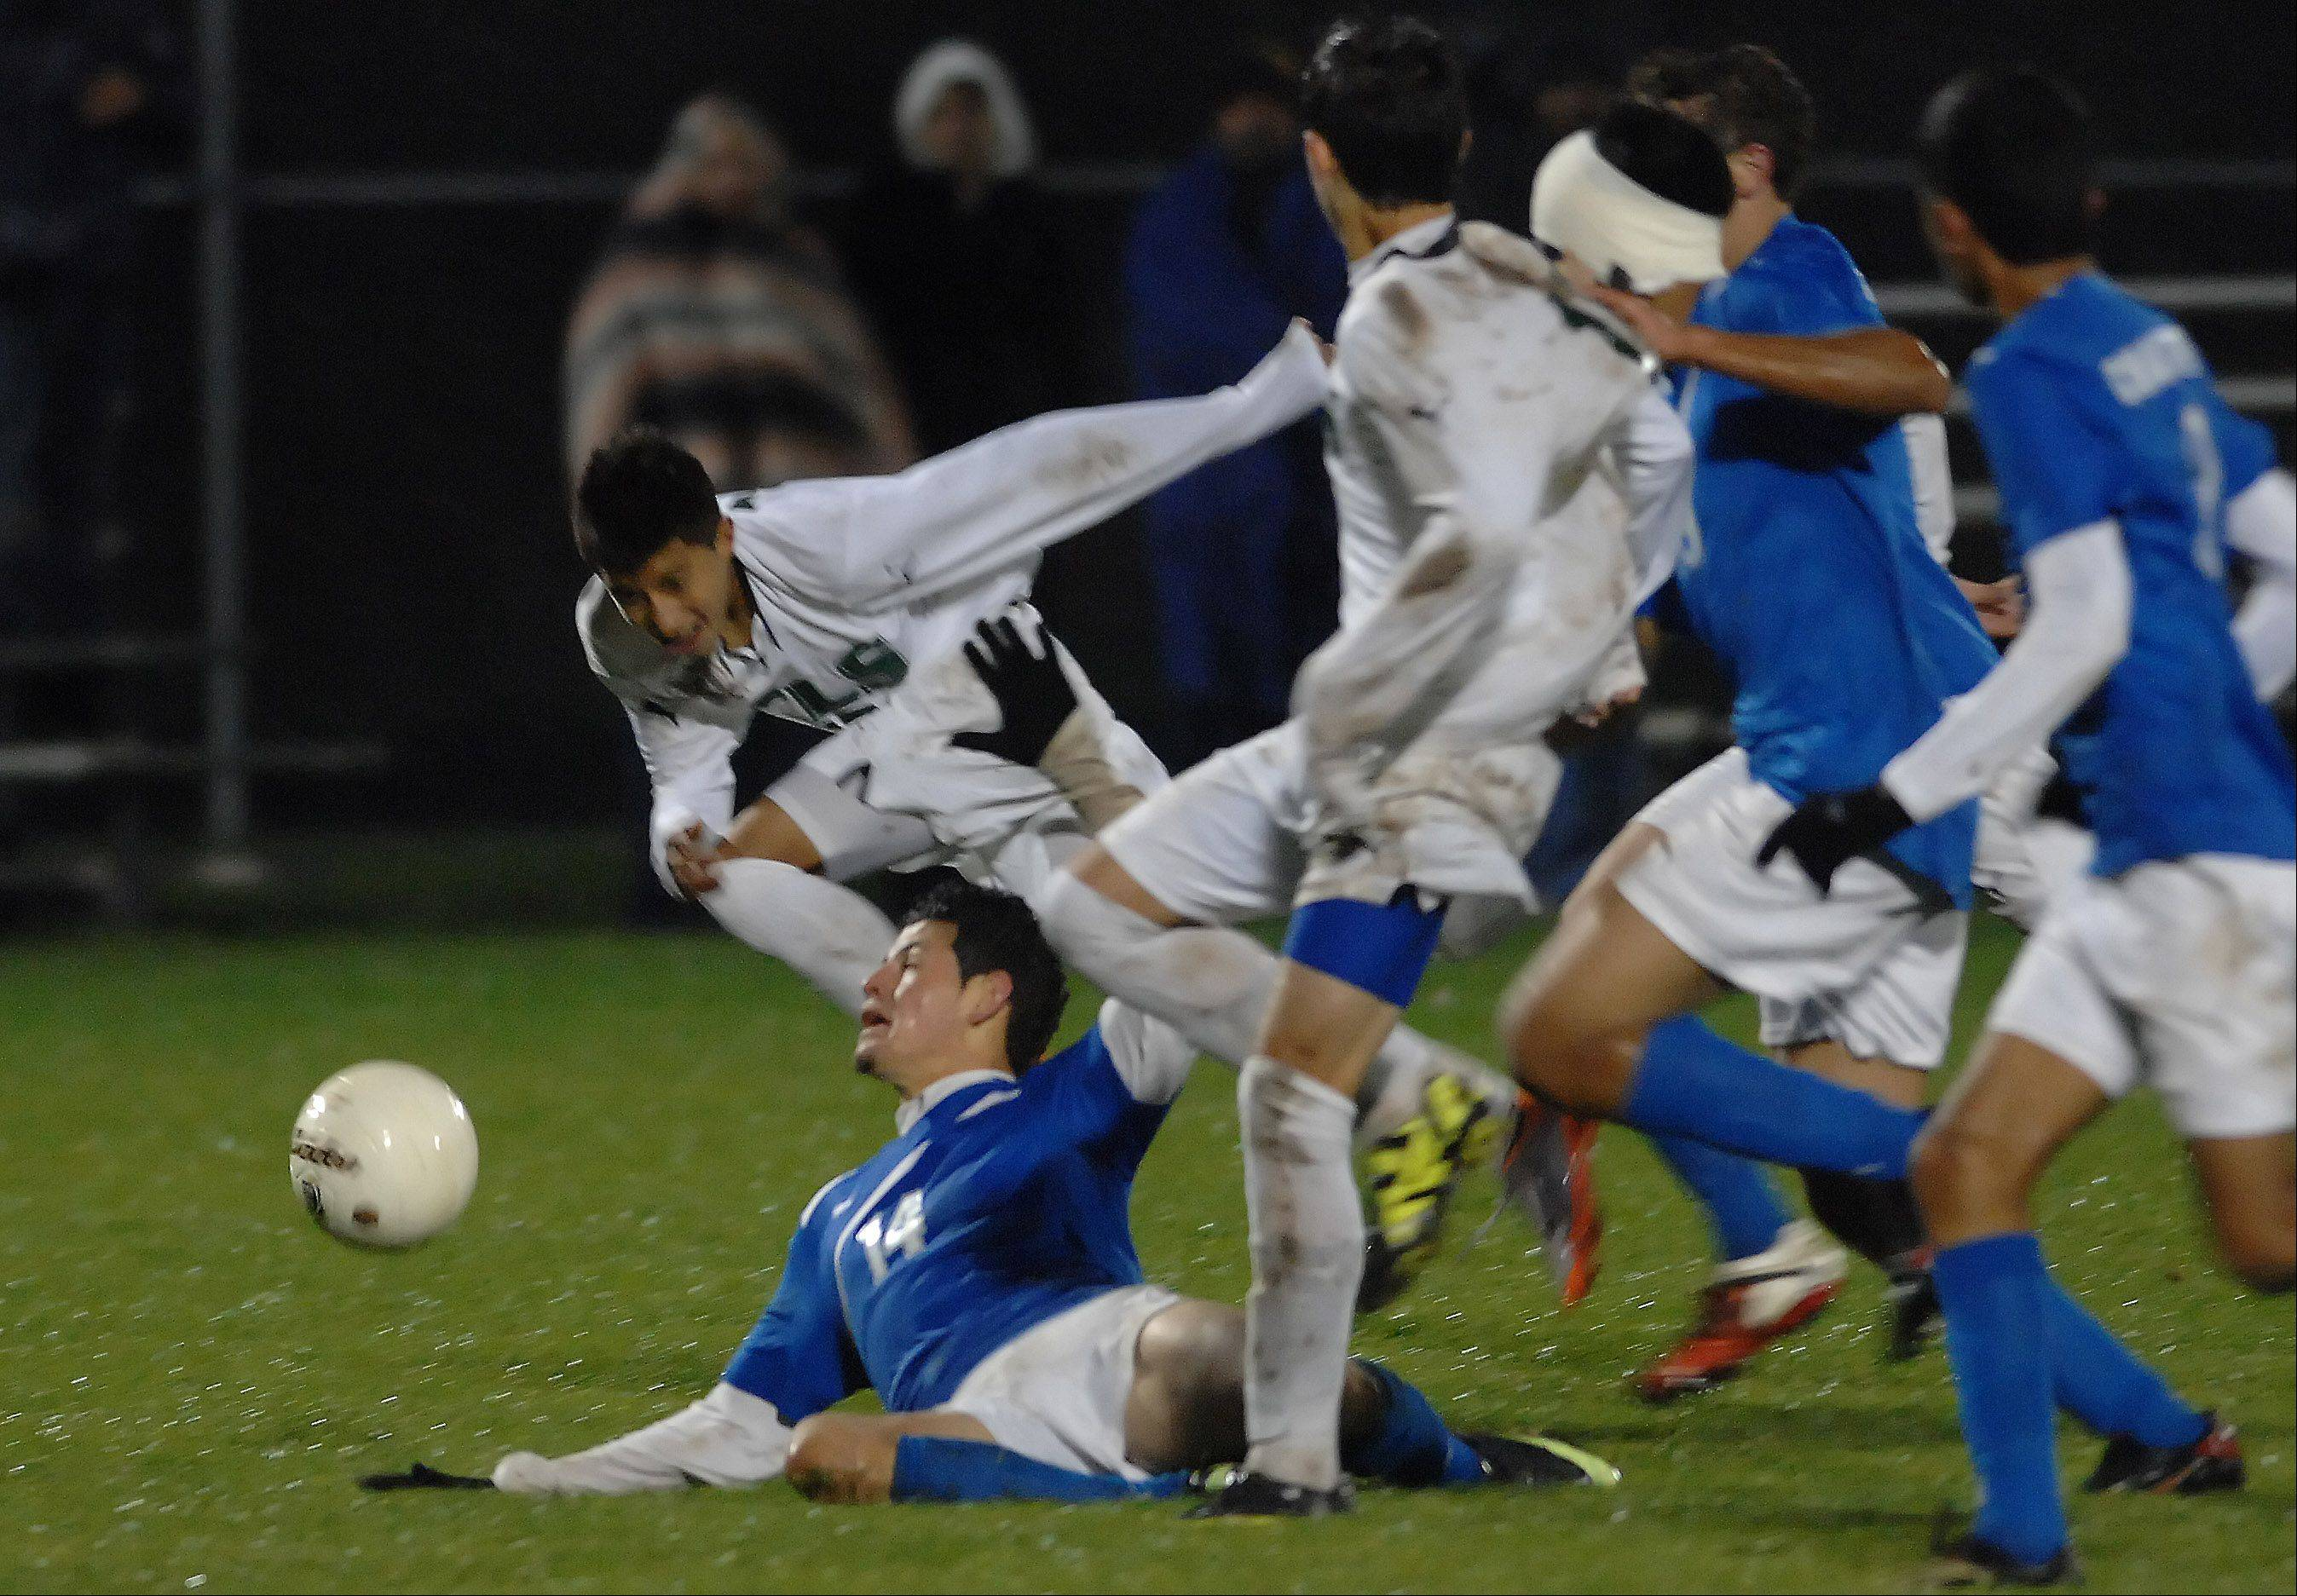 Dundee-Crown's Eduardo Arellano is trampled in the rain during Wednesday's soccer match in Algonquin.